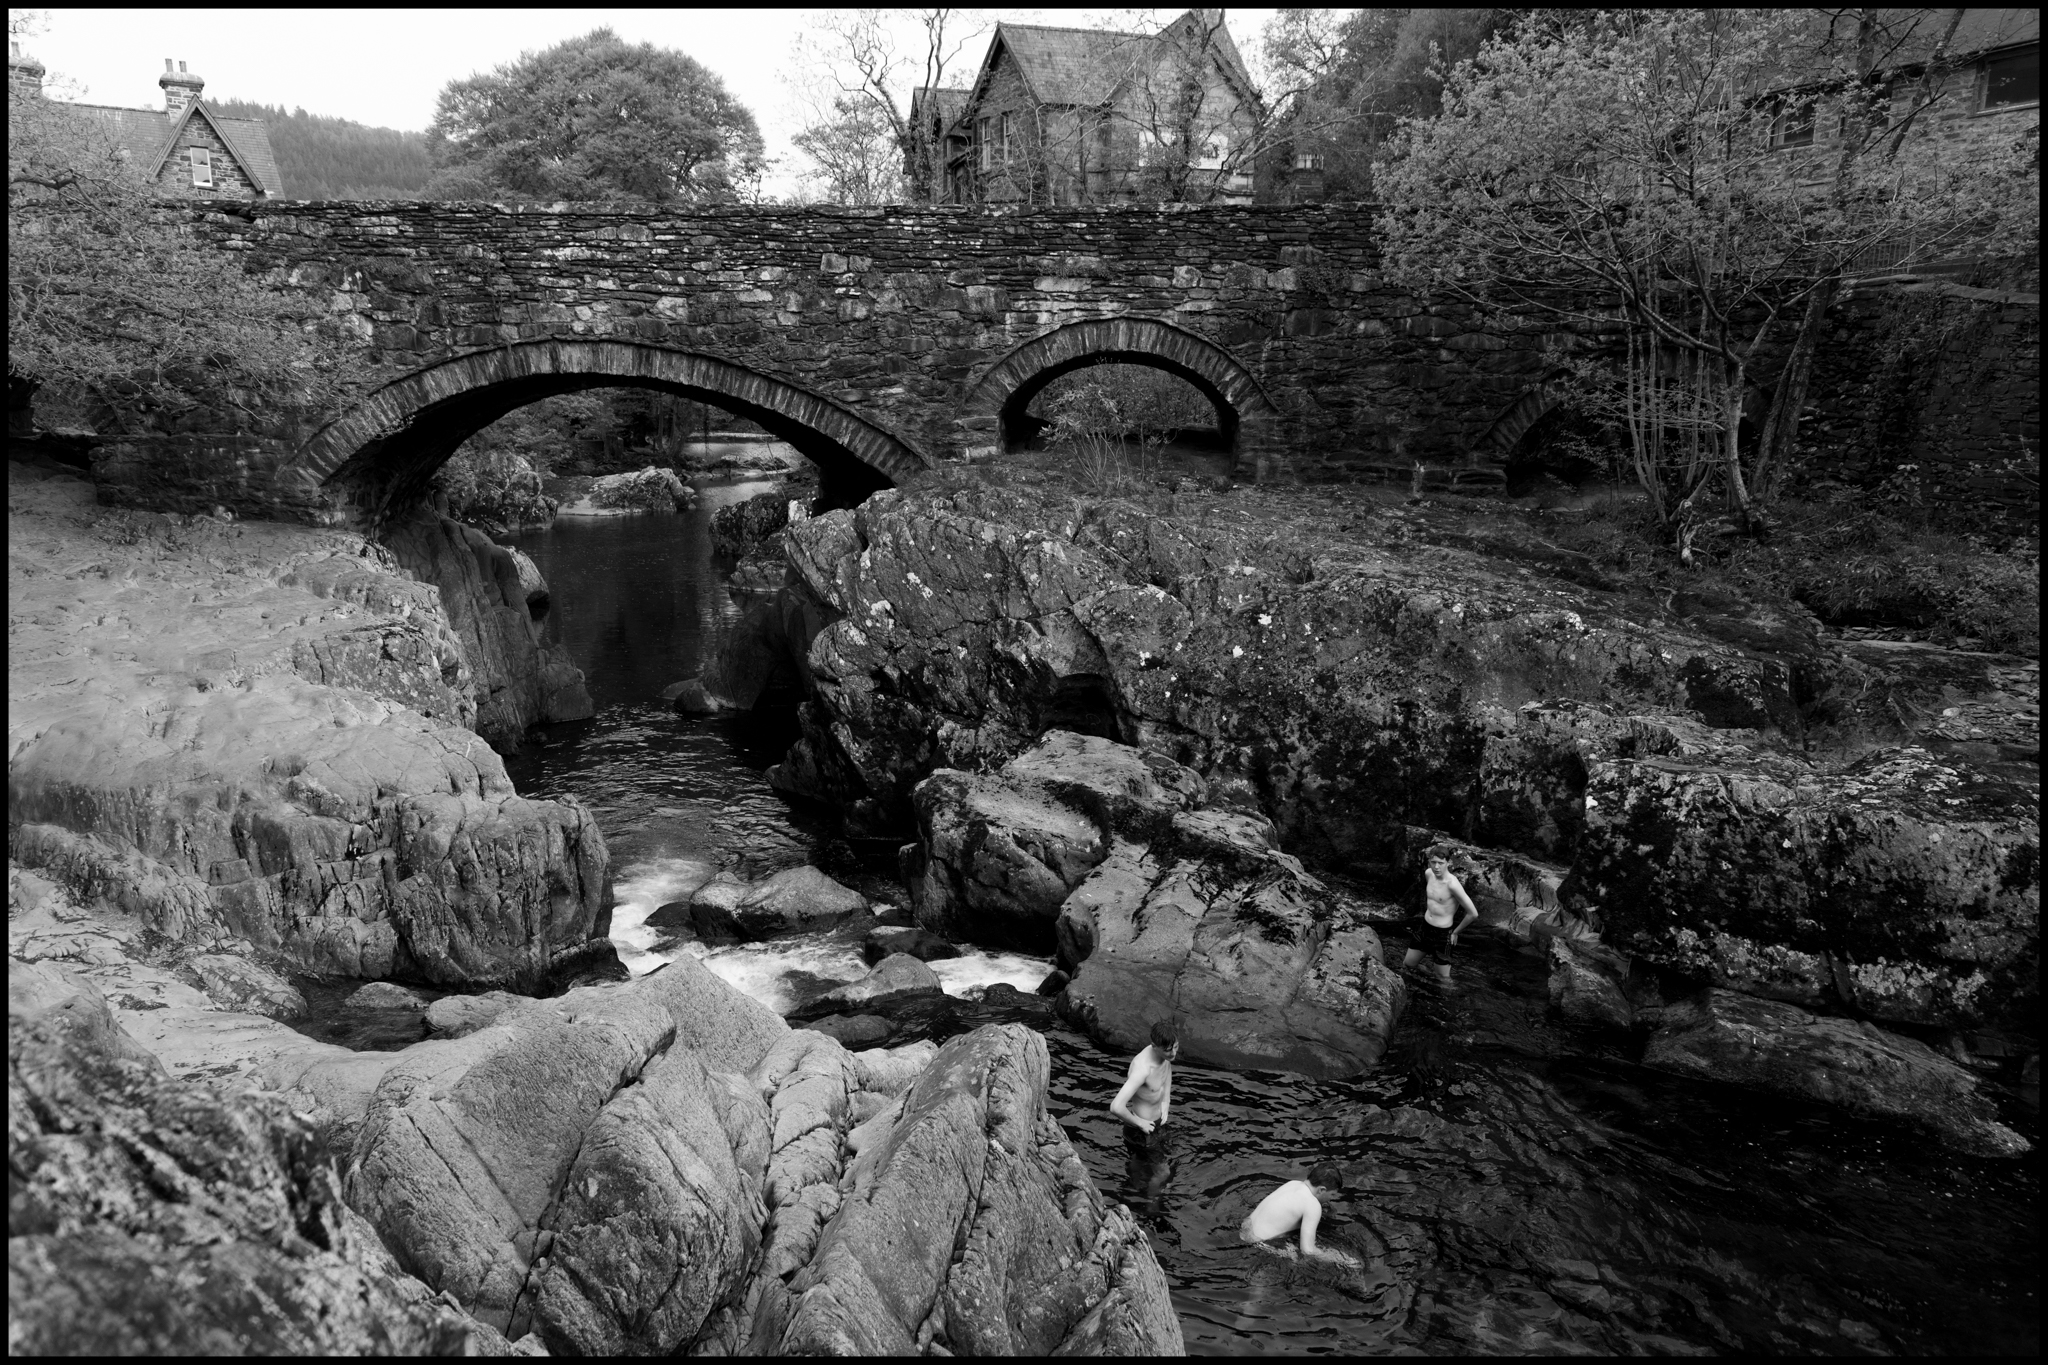 17 May 2019 - Three lads swimming, Betws-y-Coed Wales